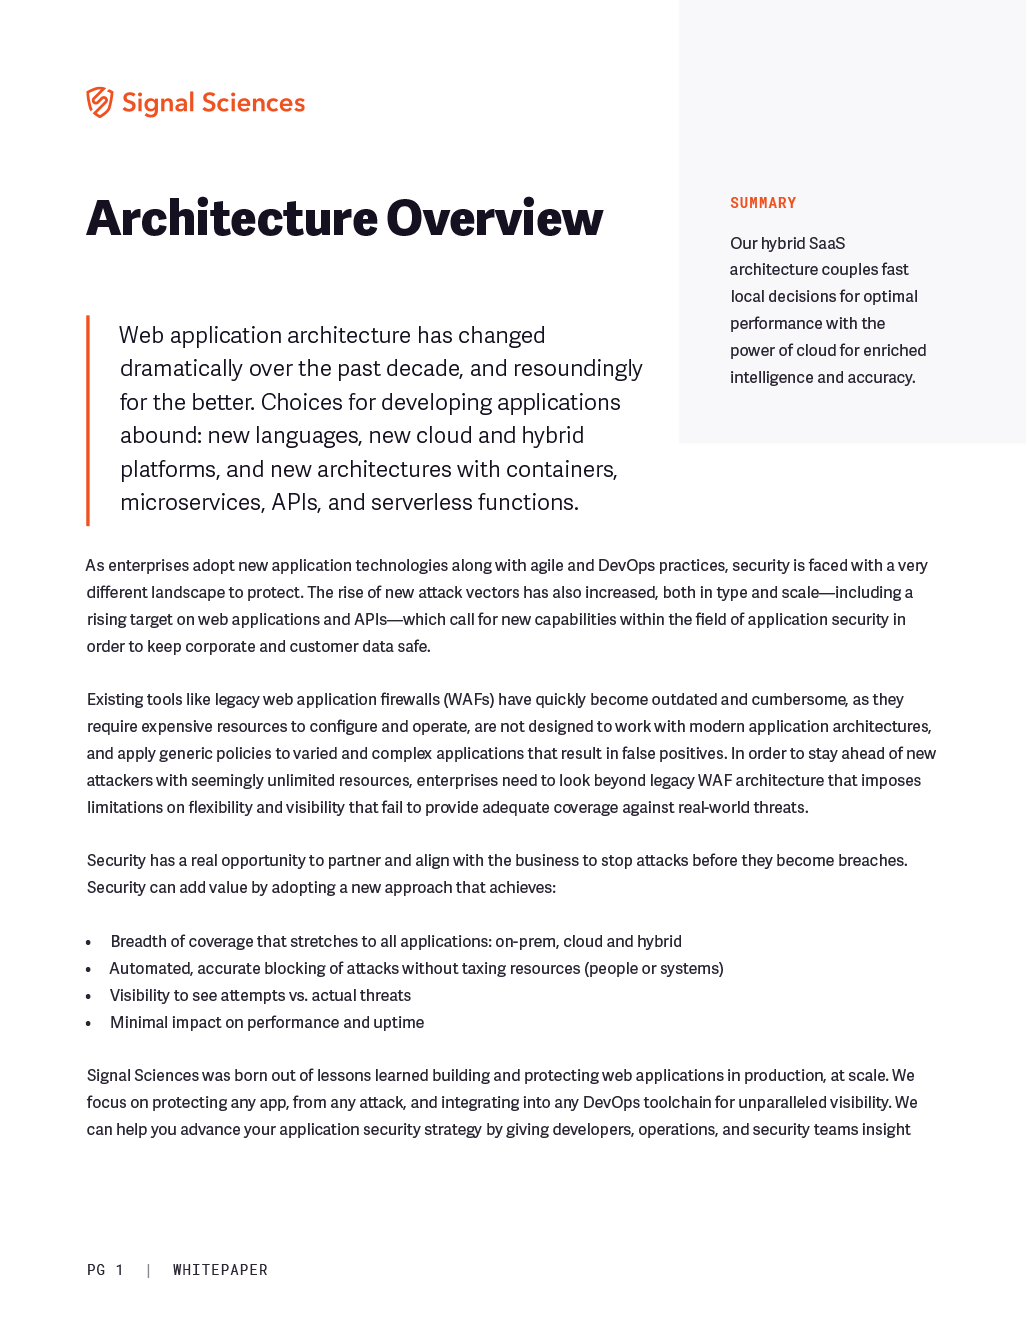 Signal Sciences Architecture Datasheet